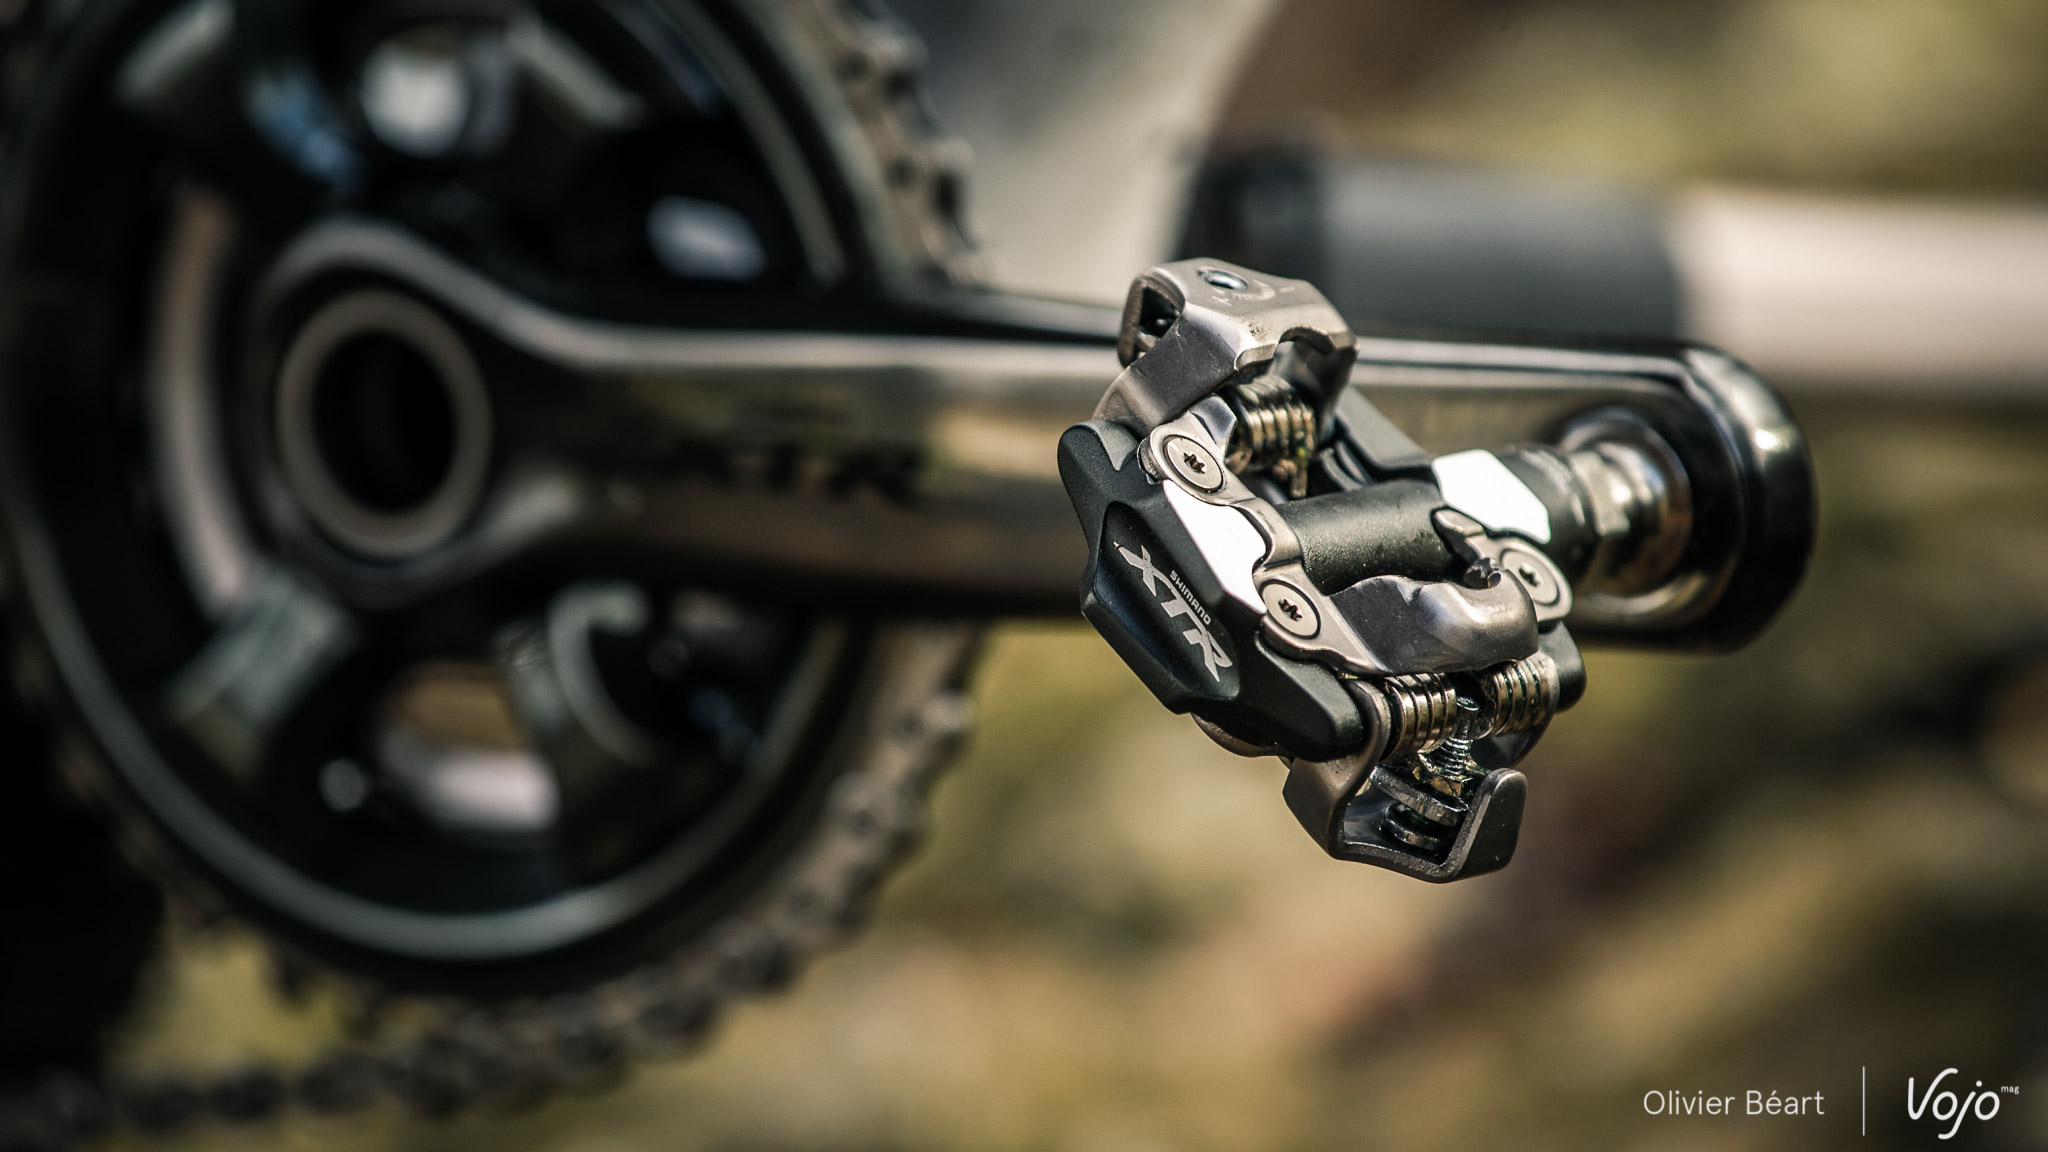 Shimano_XTR_Di2_Test_longue_duree_Copyright_Beart_VojoMag-1-9